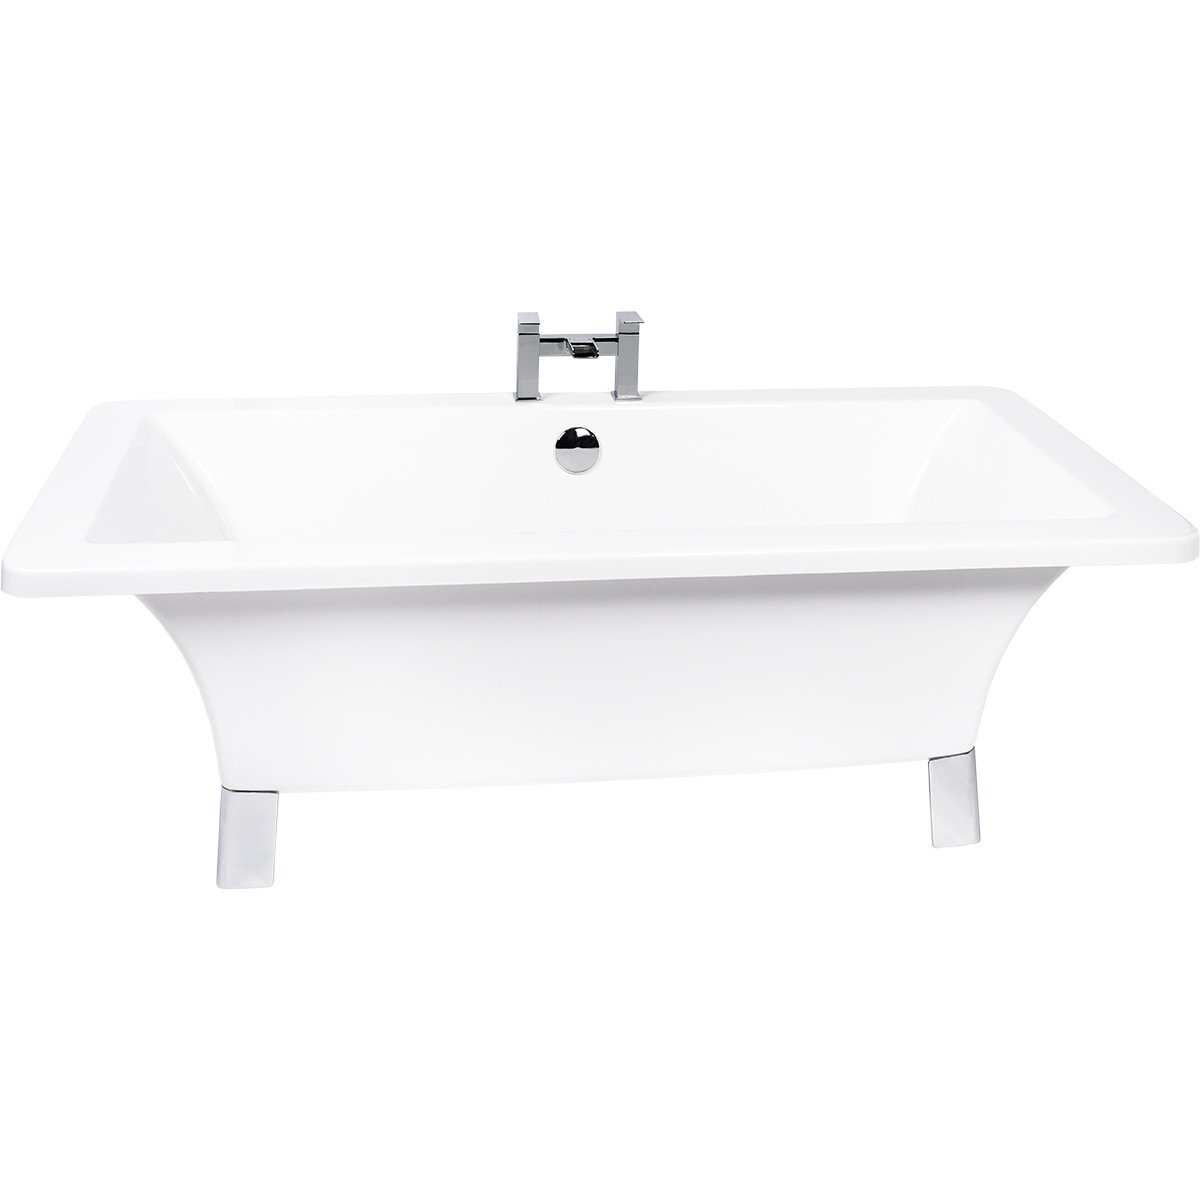 Livorno 1700 Freestanding Bath